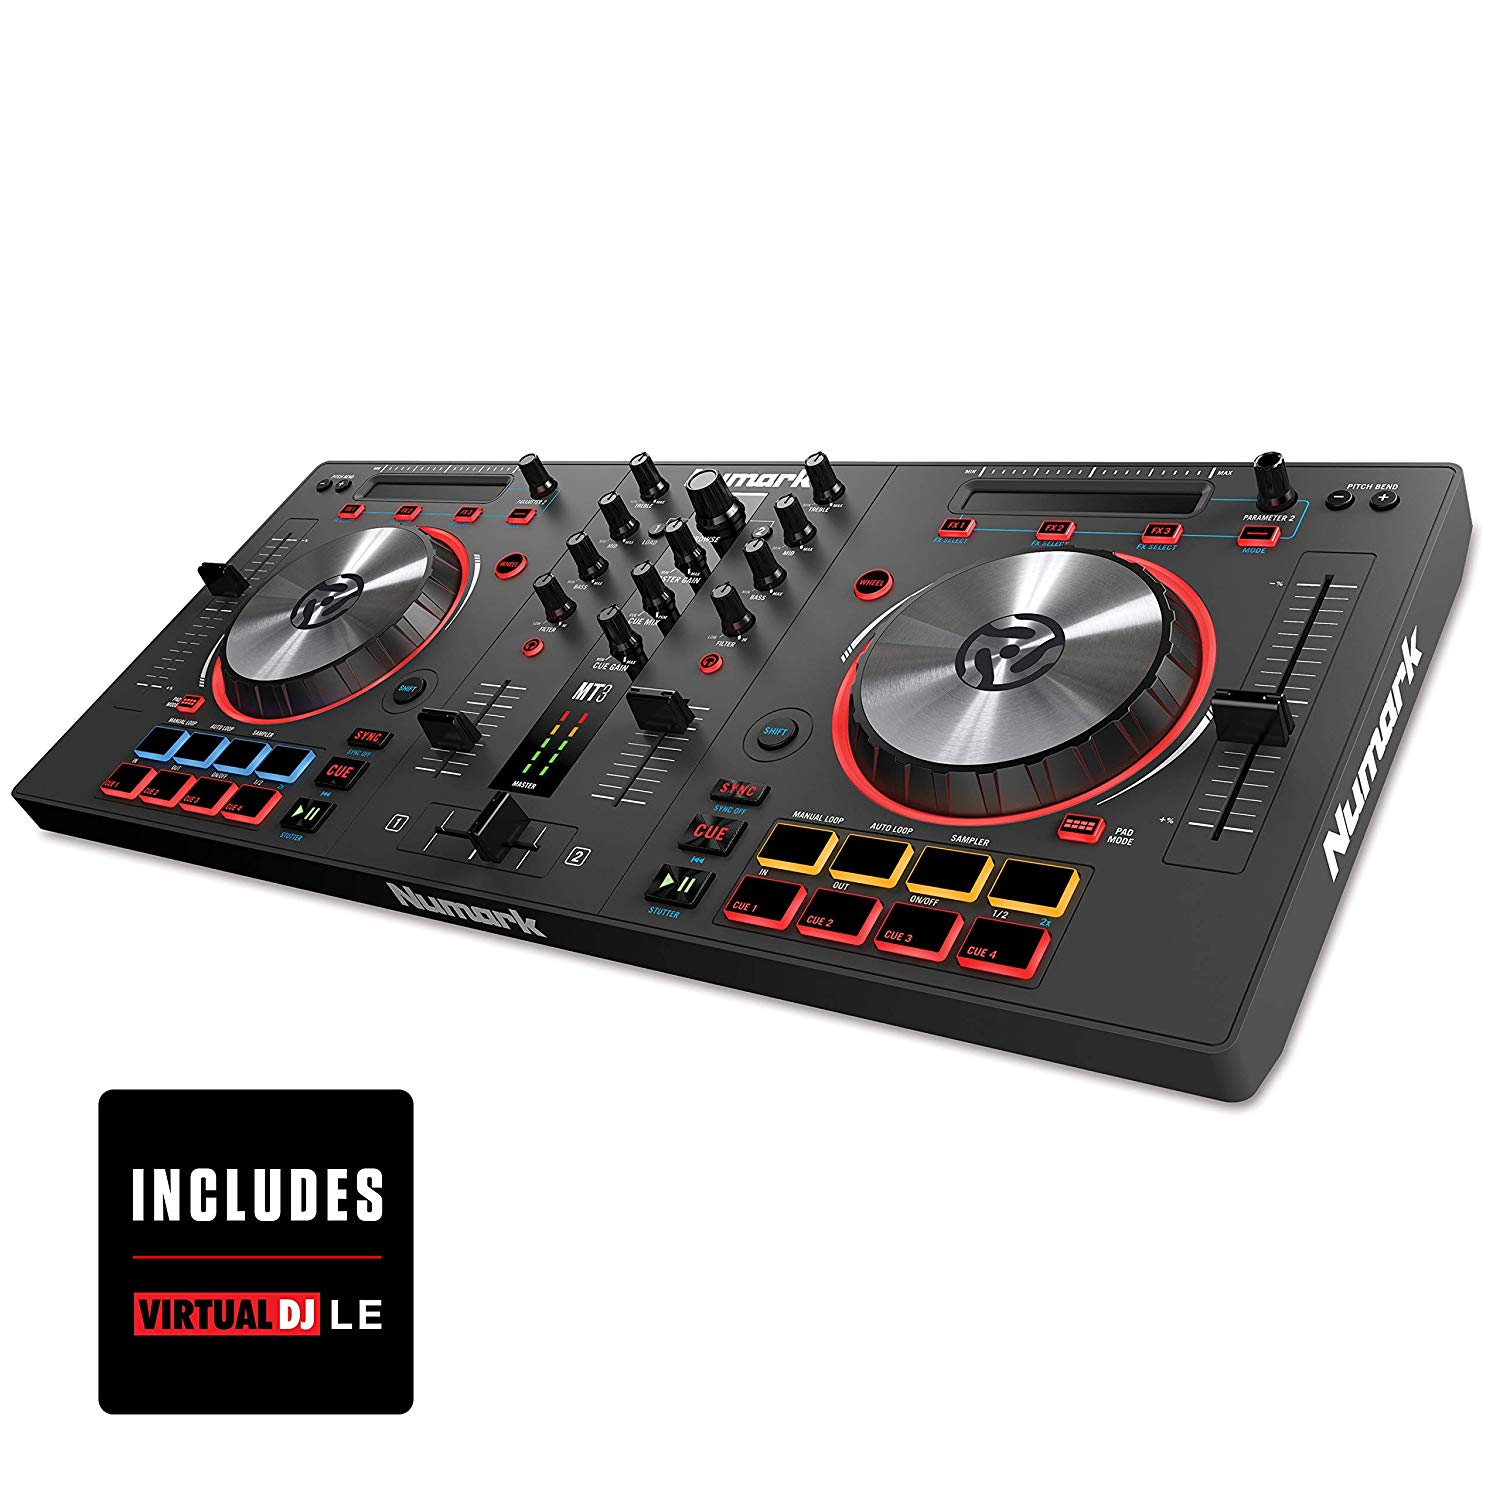 Numark Mixtrack 3   All-In-One 2-Deck DJ Controller for Serato DJ Including an Long-Throw Pitch Faders, 5-inch High Resolution Jog Wheels, and Virtual DJ LE & Prime Loops Remix Tool Kit